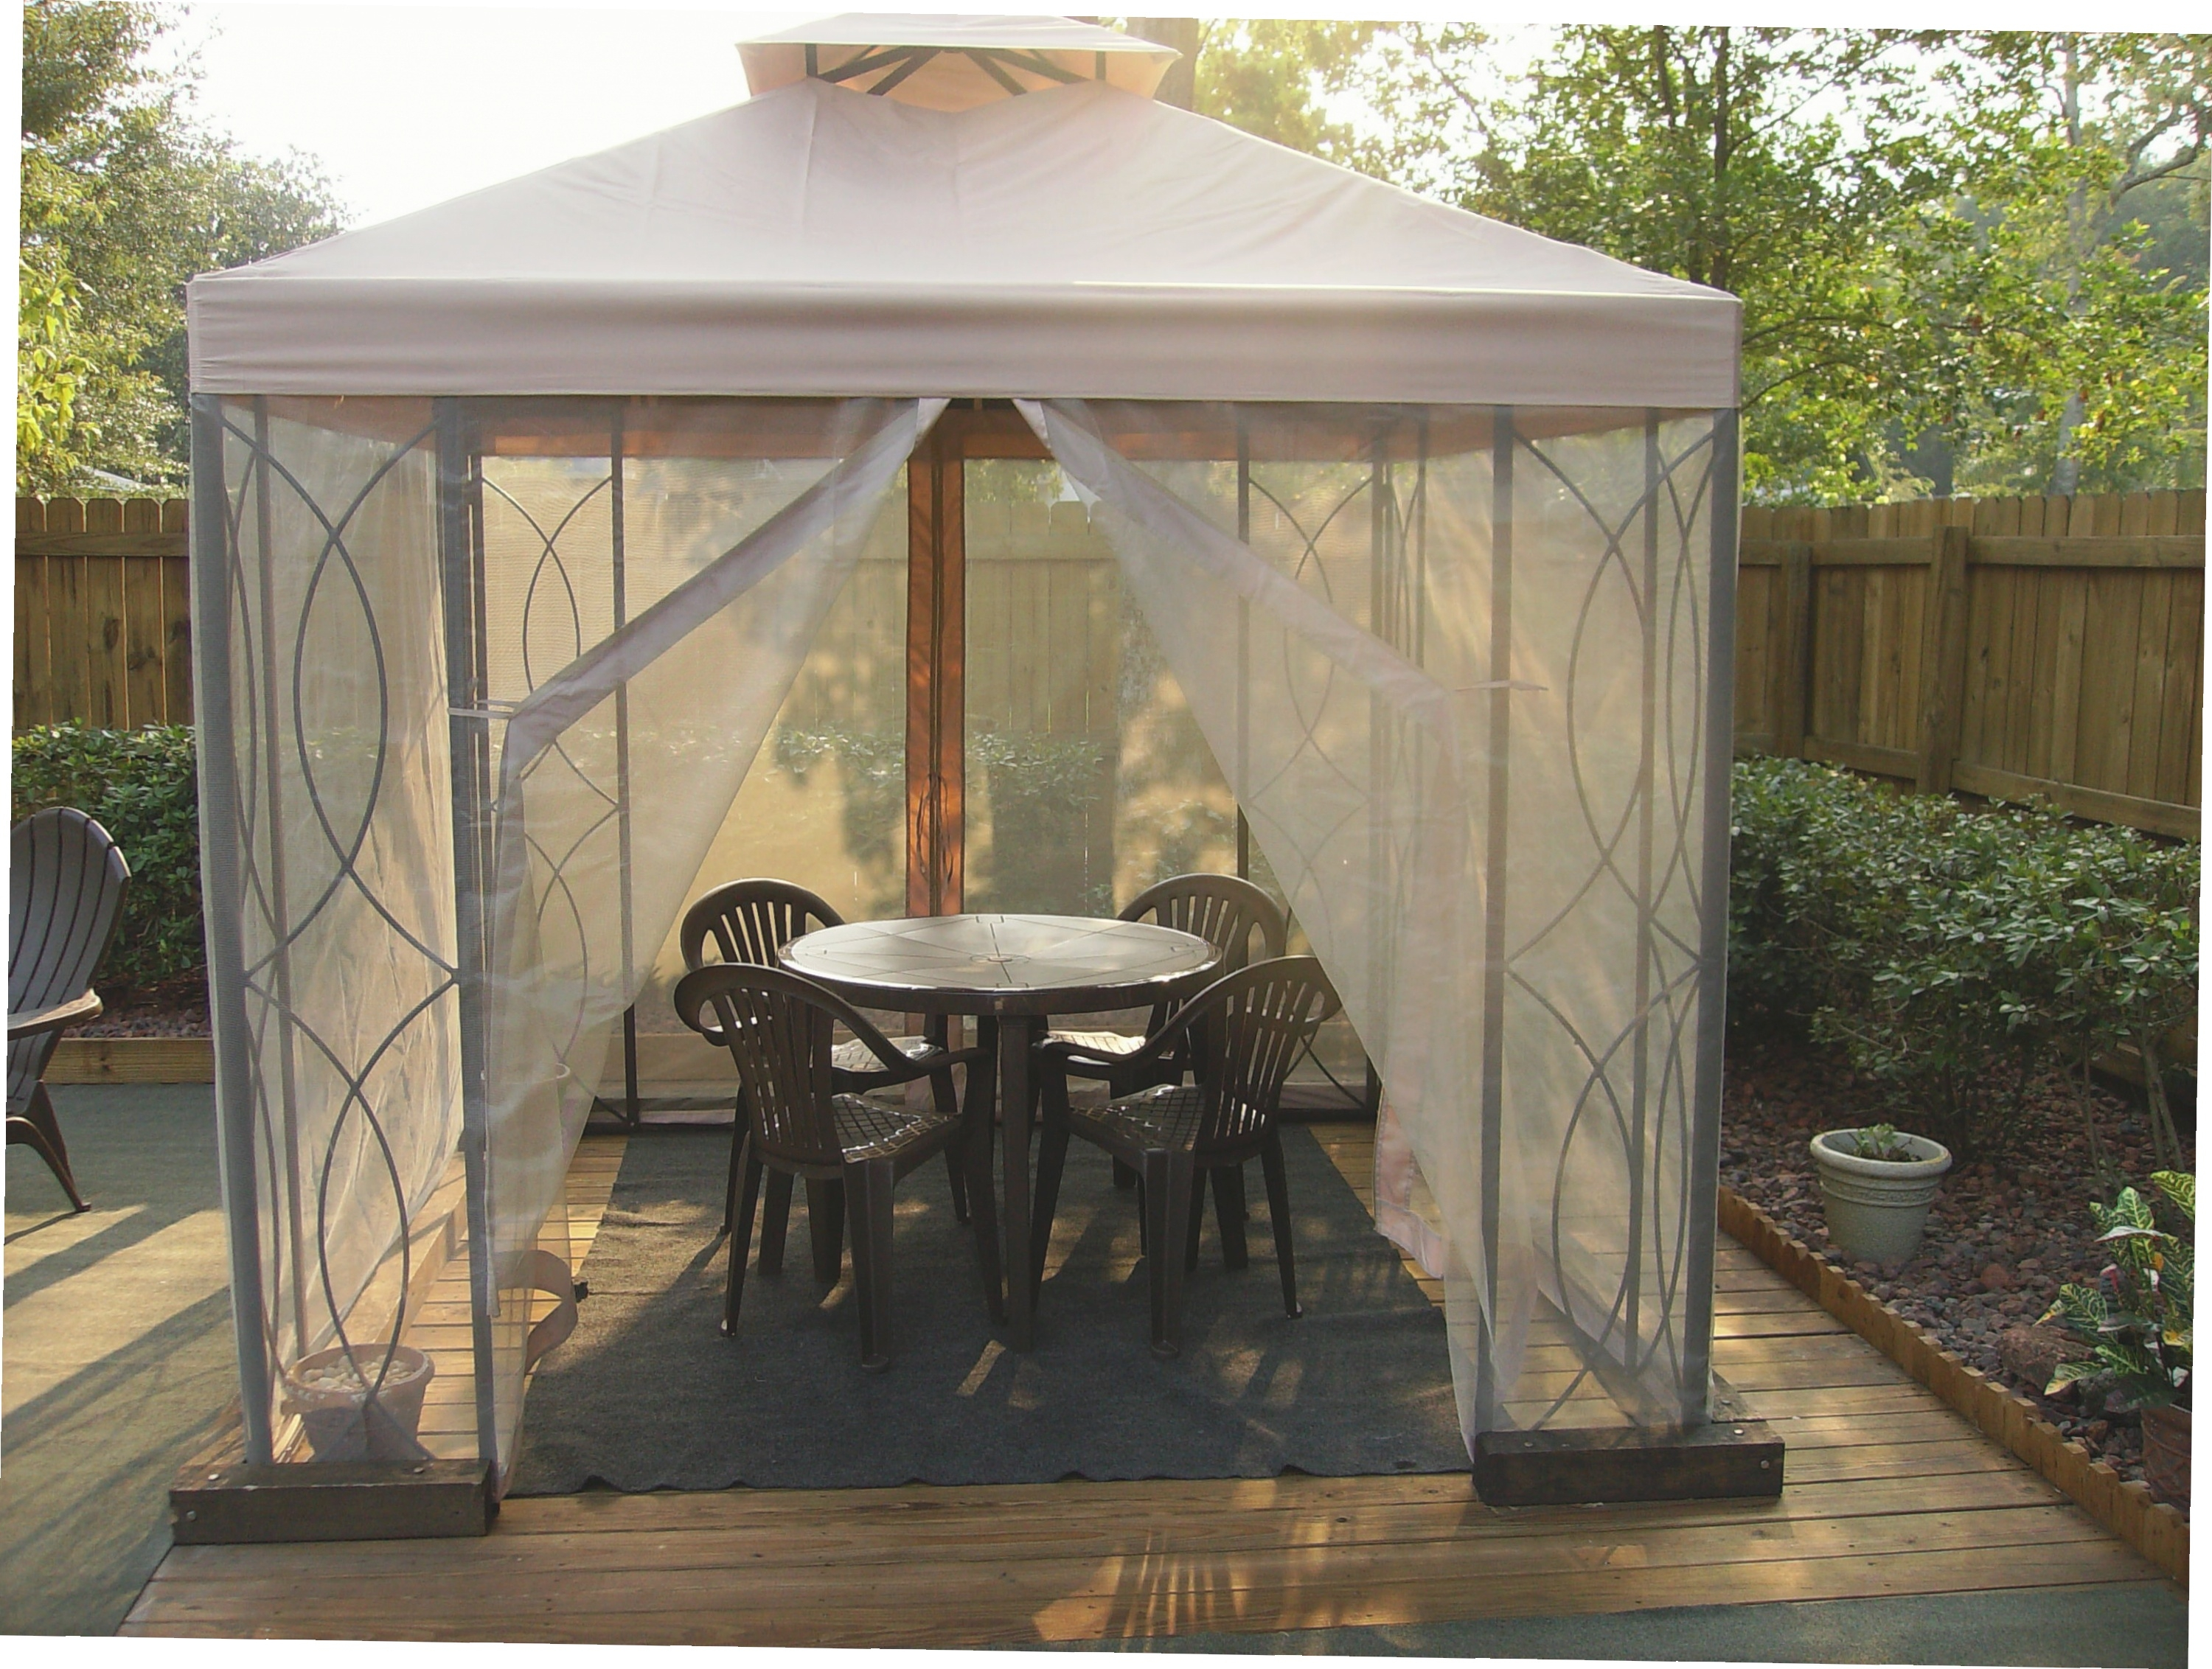 Screened Gazebo Kits | Gazebos Walmart | Screened Gazebo